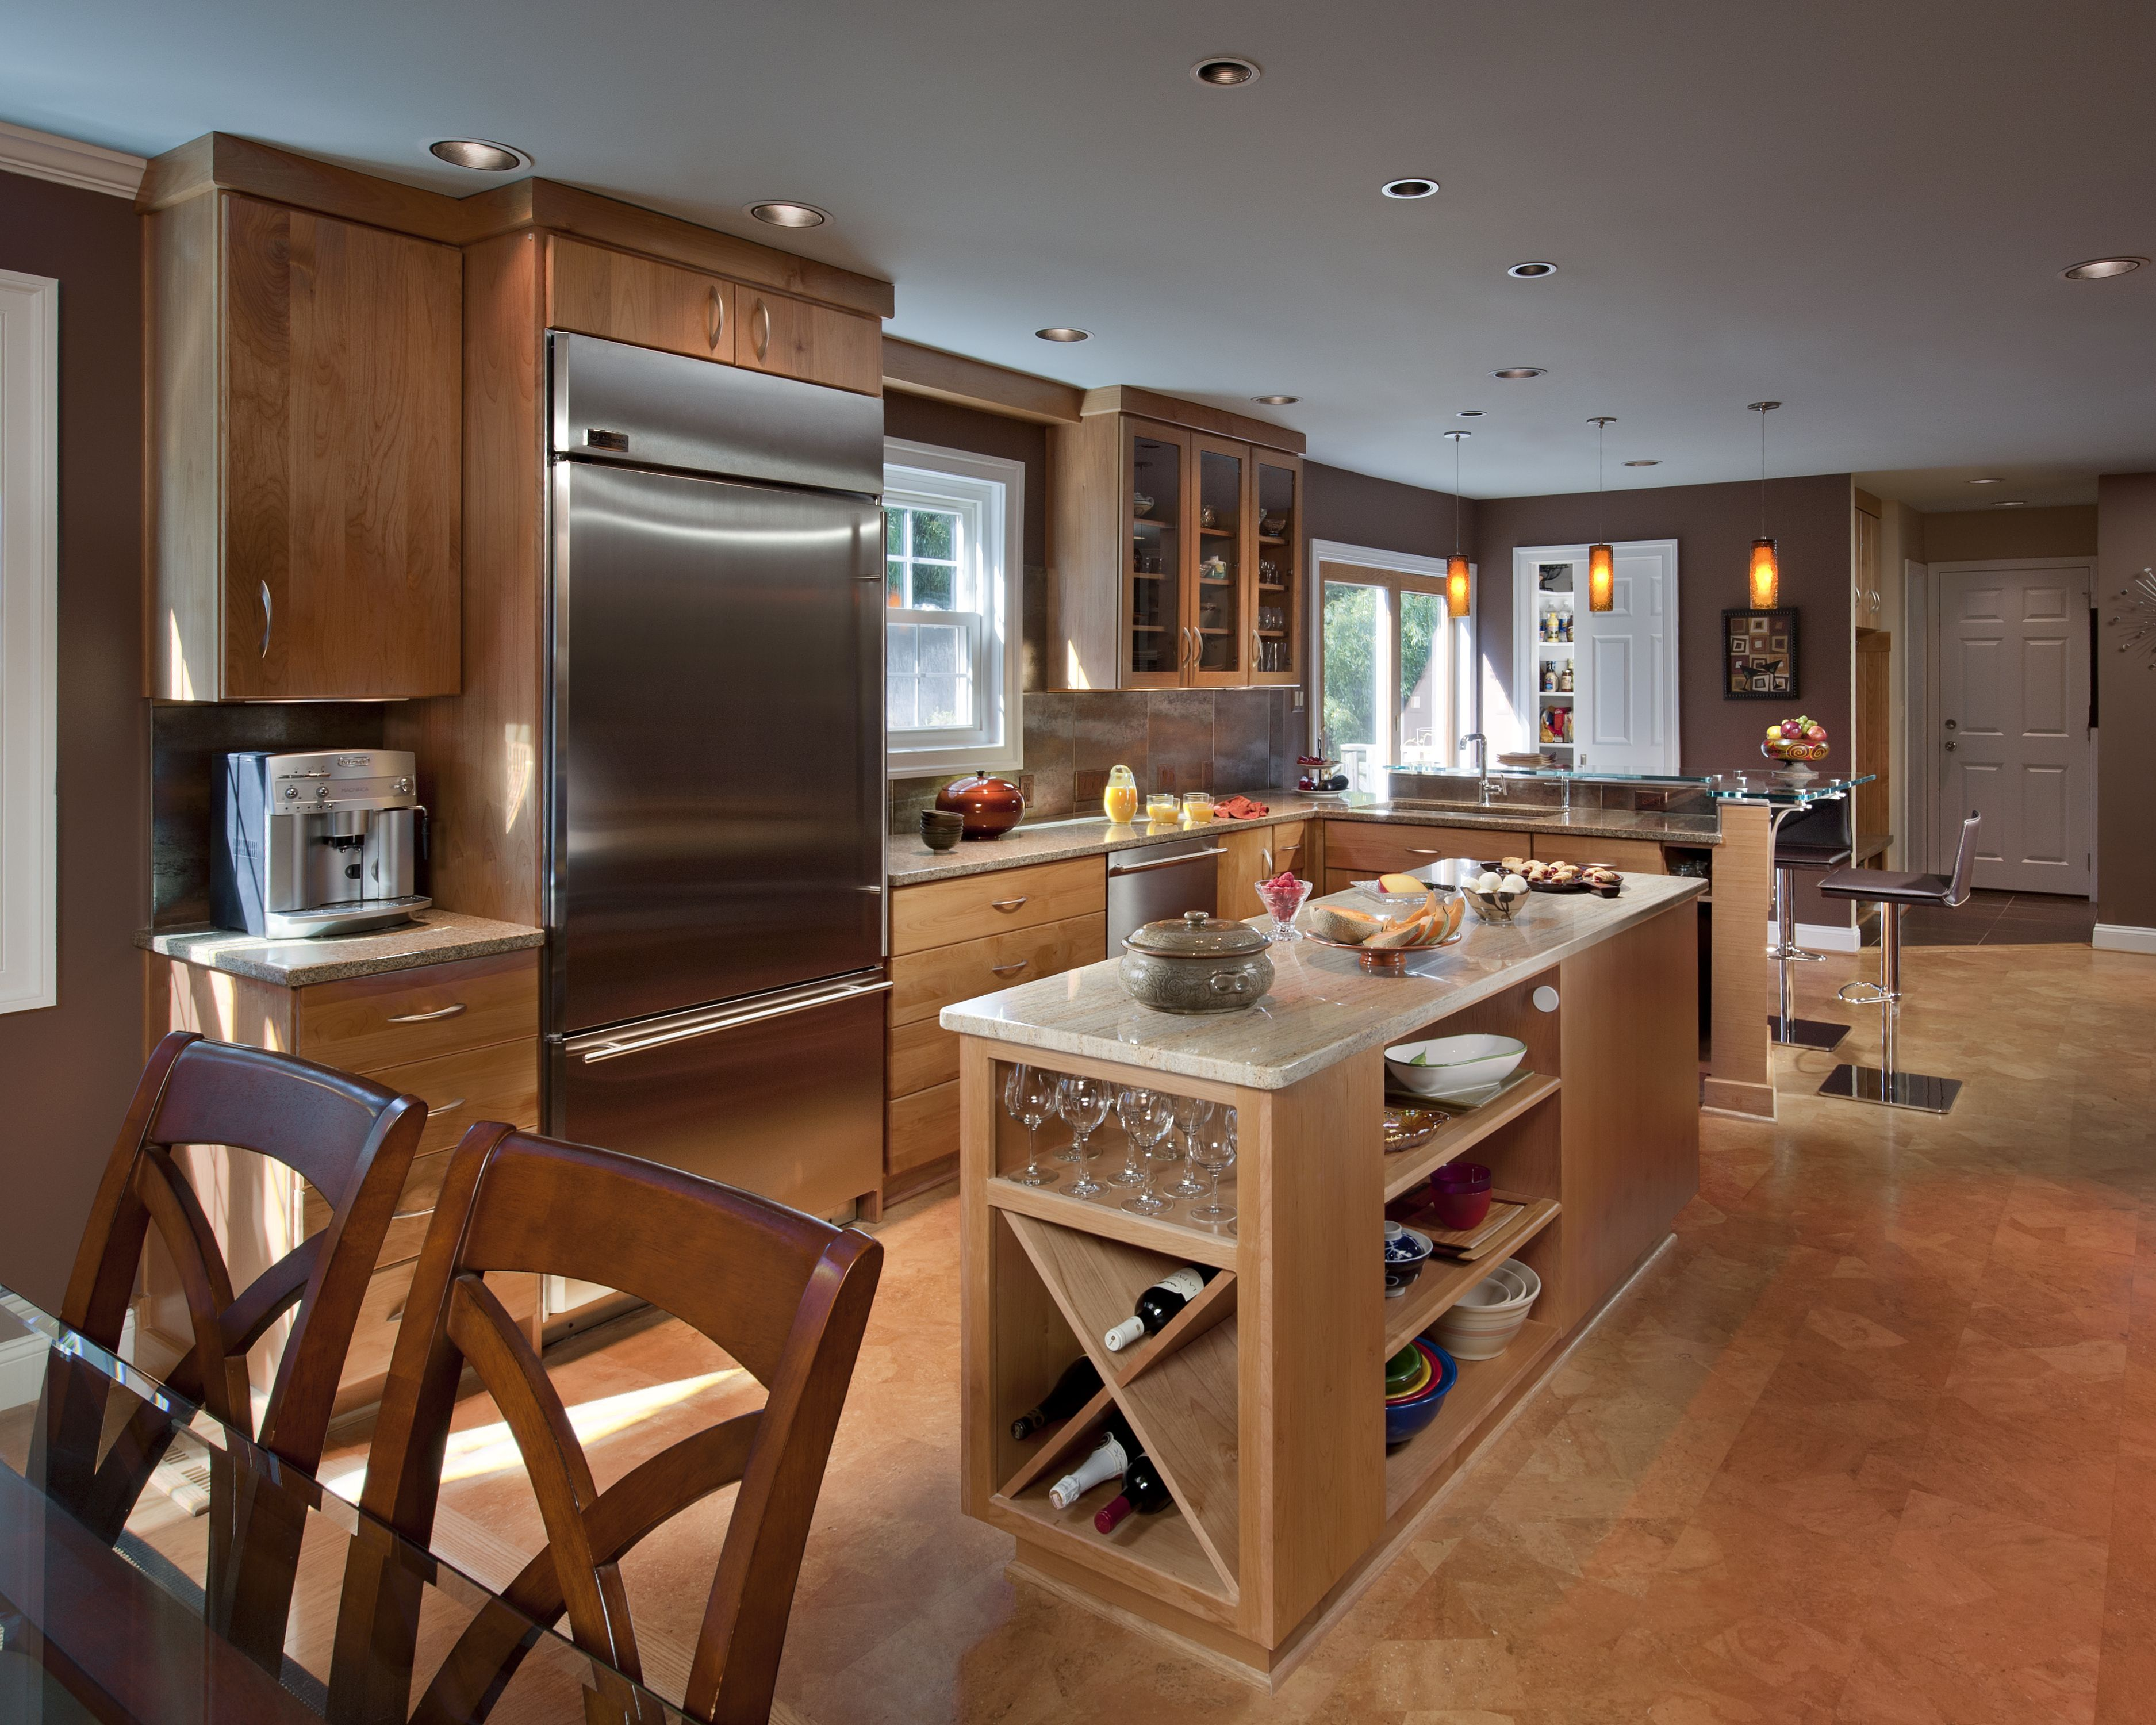 warm colors and an island for this open concept kitchen open concept kitchen kitchen remodel on kitchen remodel with island open concept id=66522